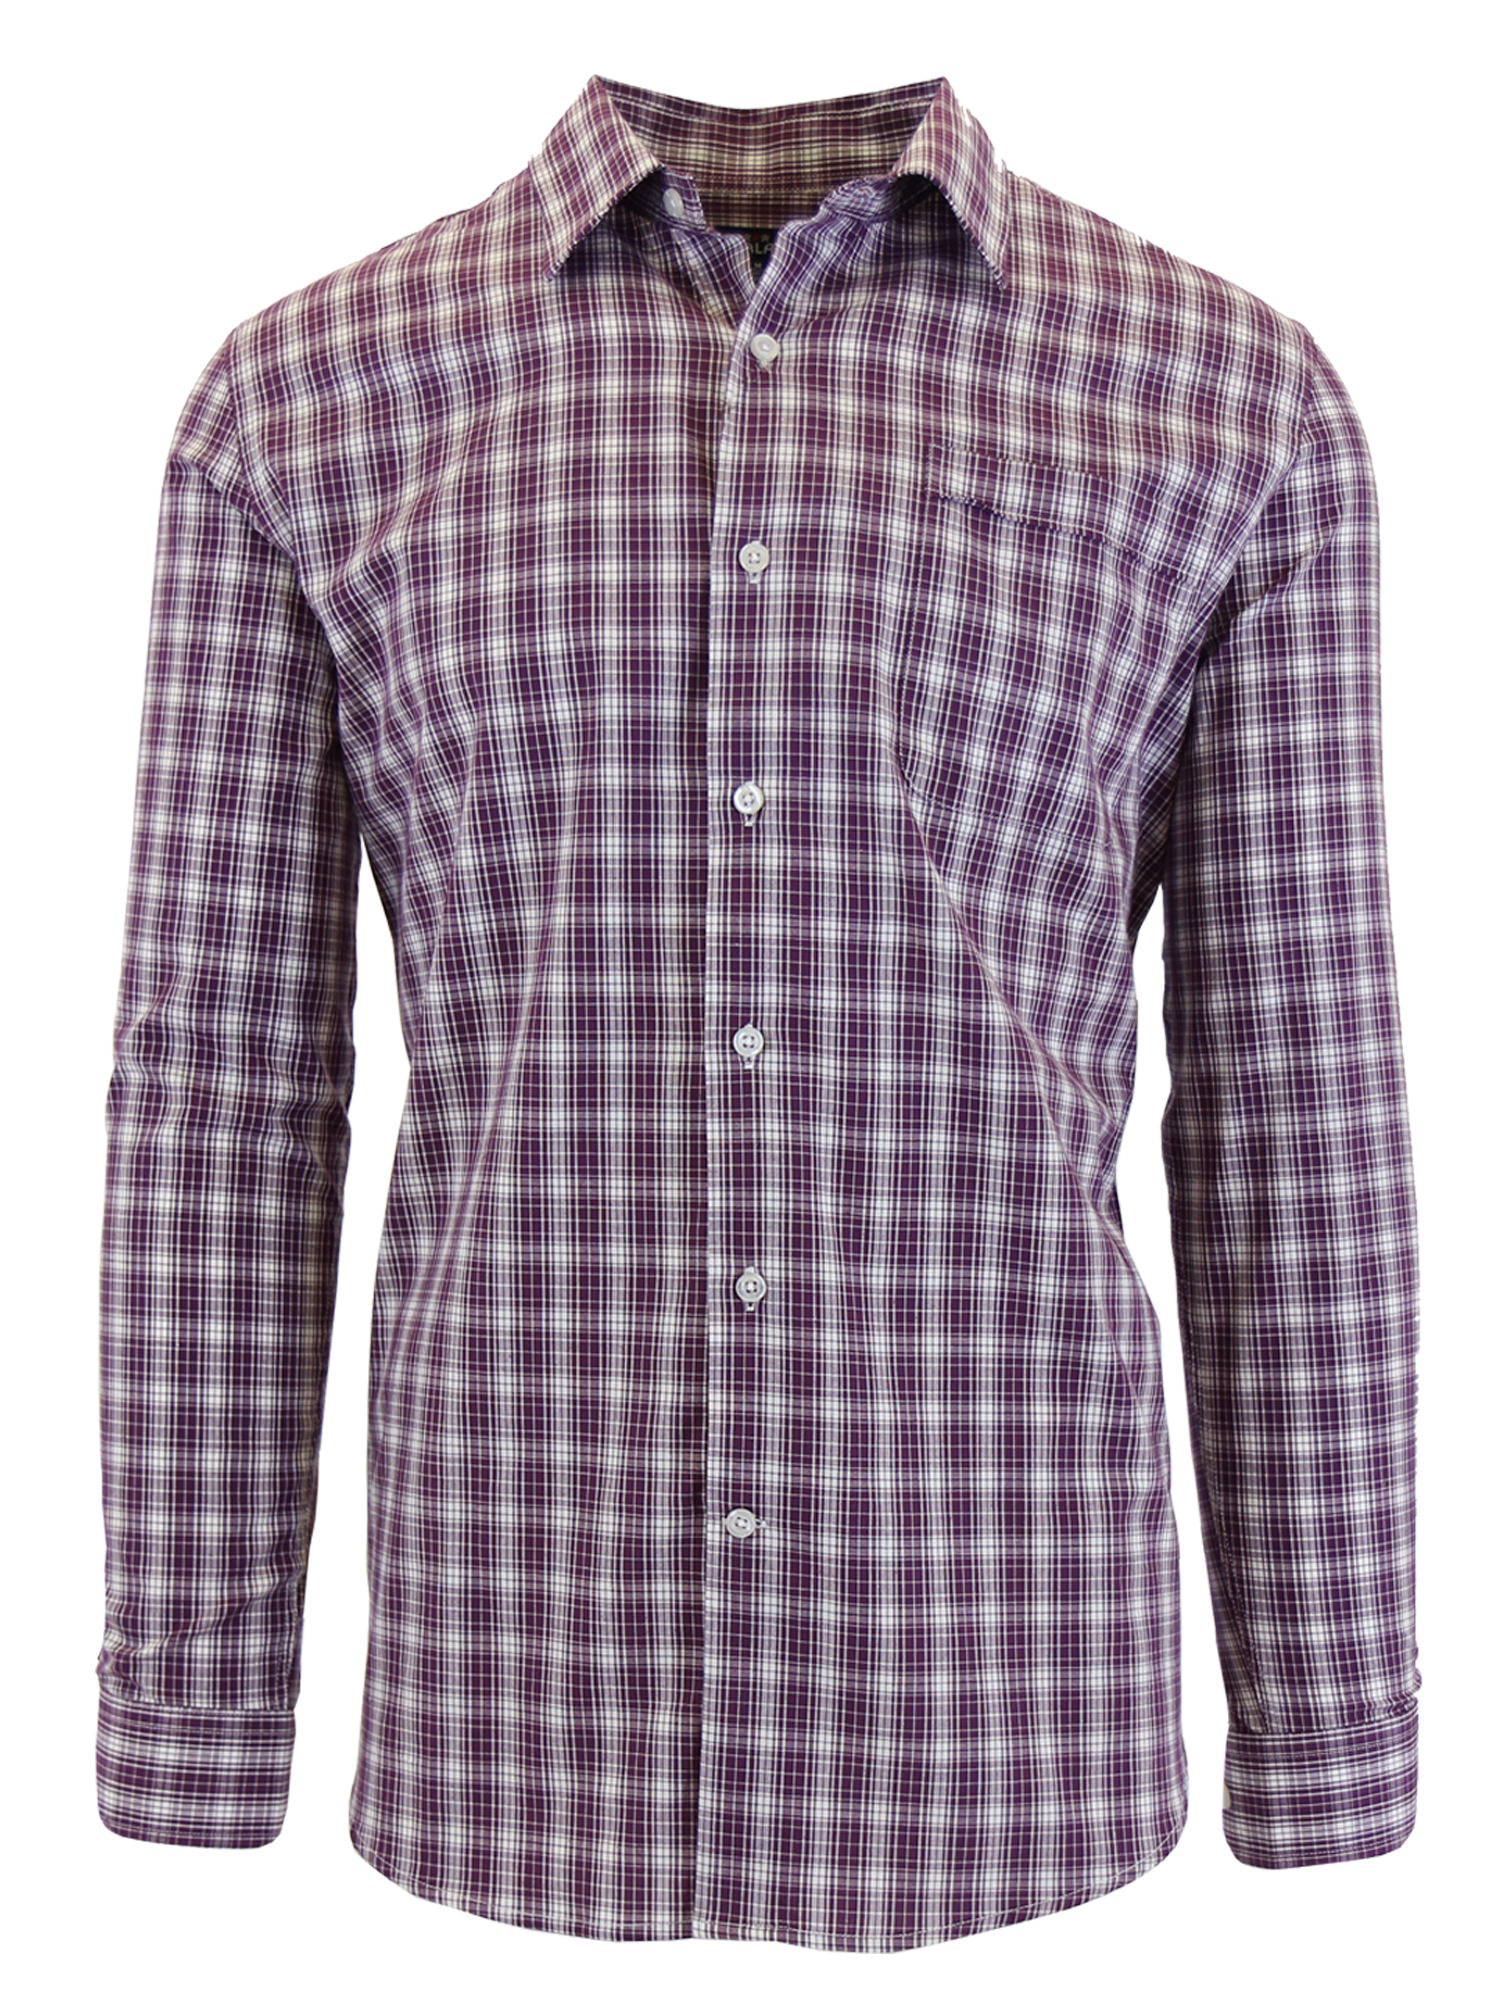 Men's Long Sleeve Printed Dress Shirt With Chest Pocket